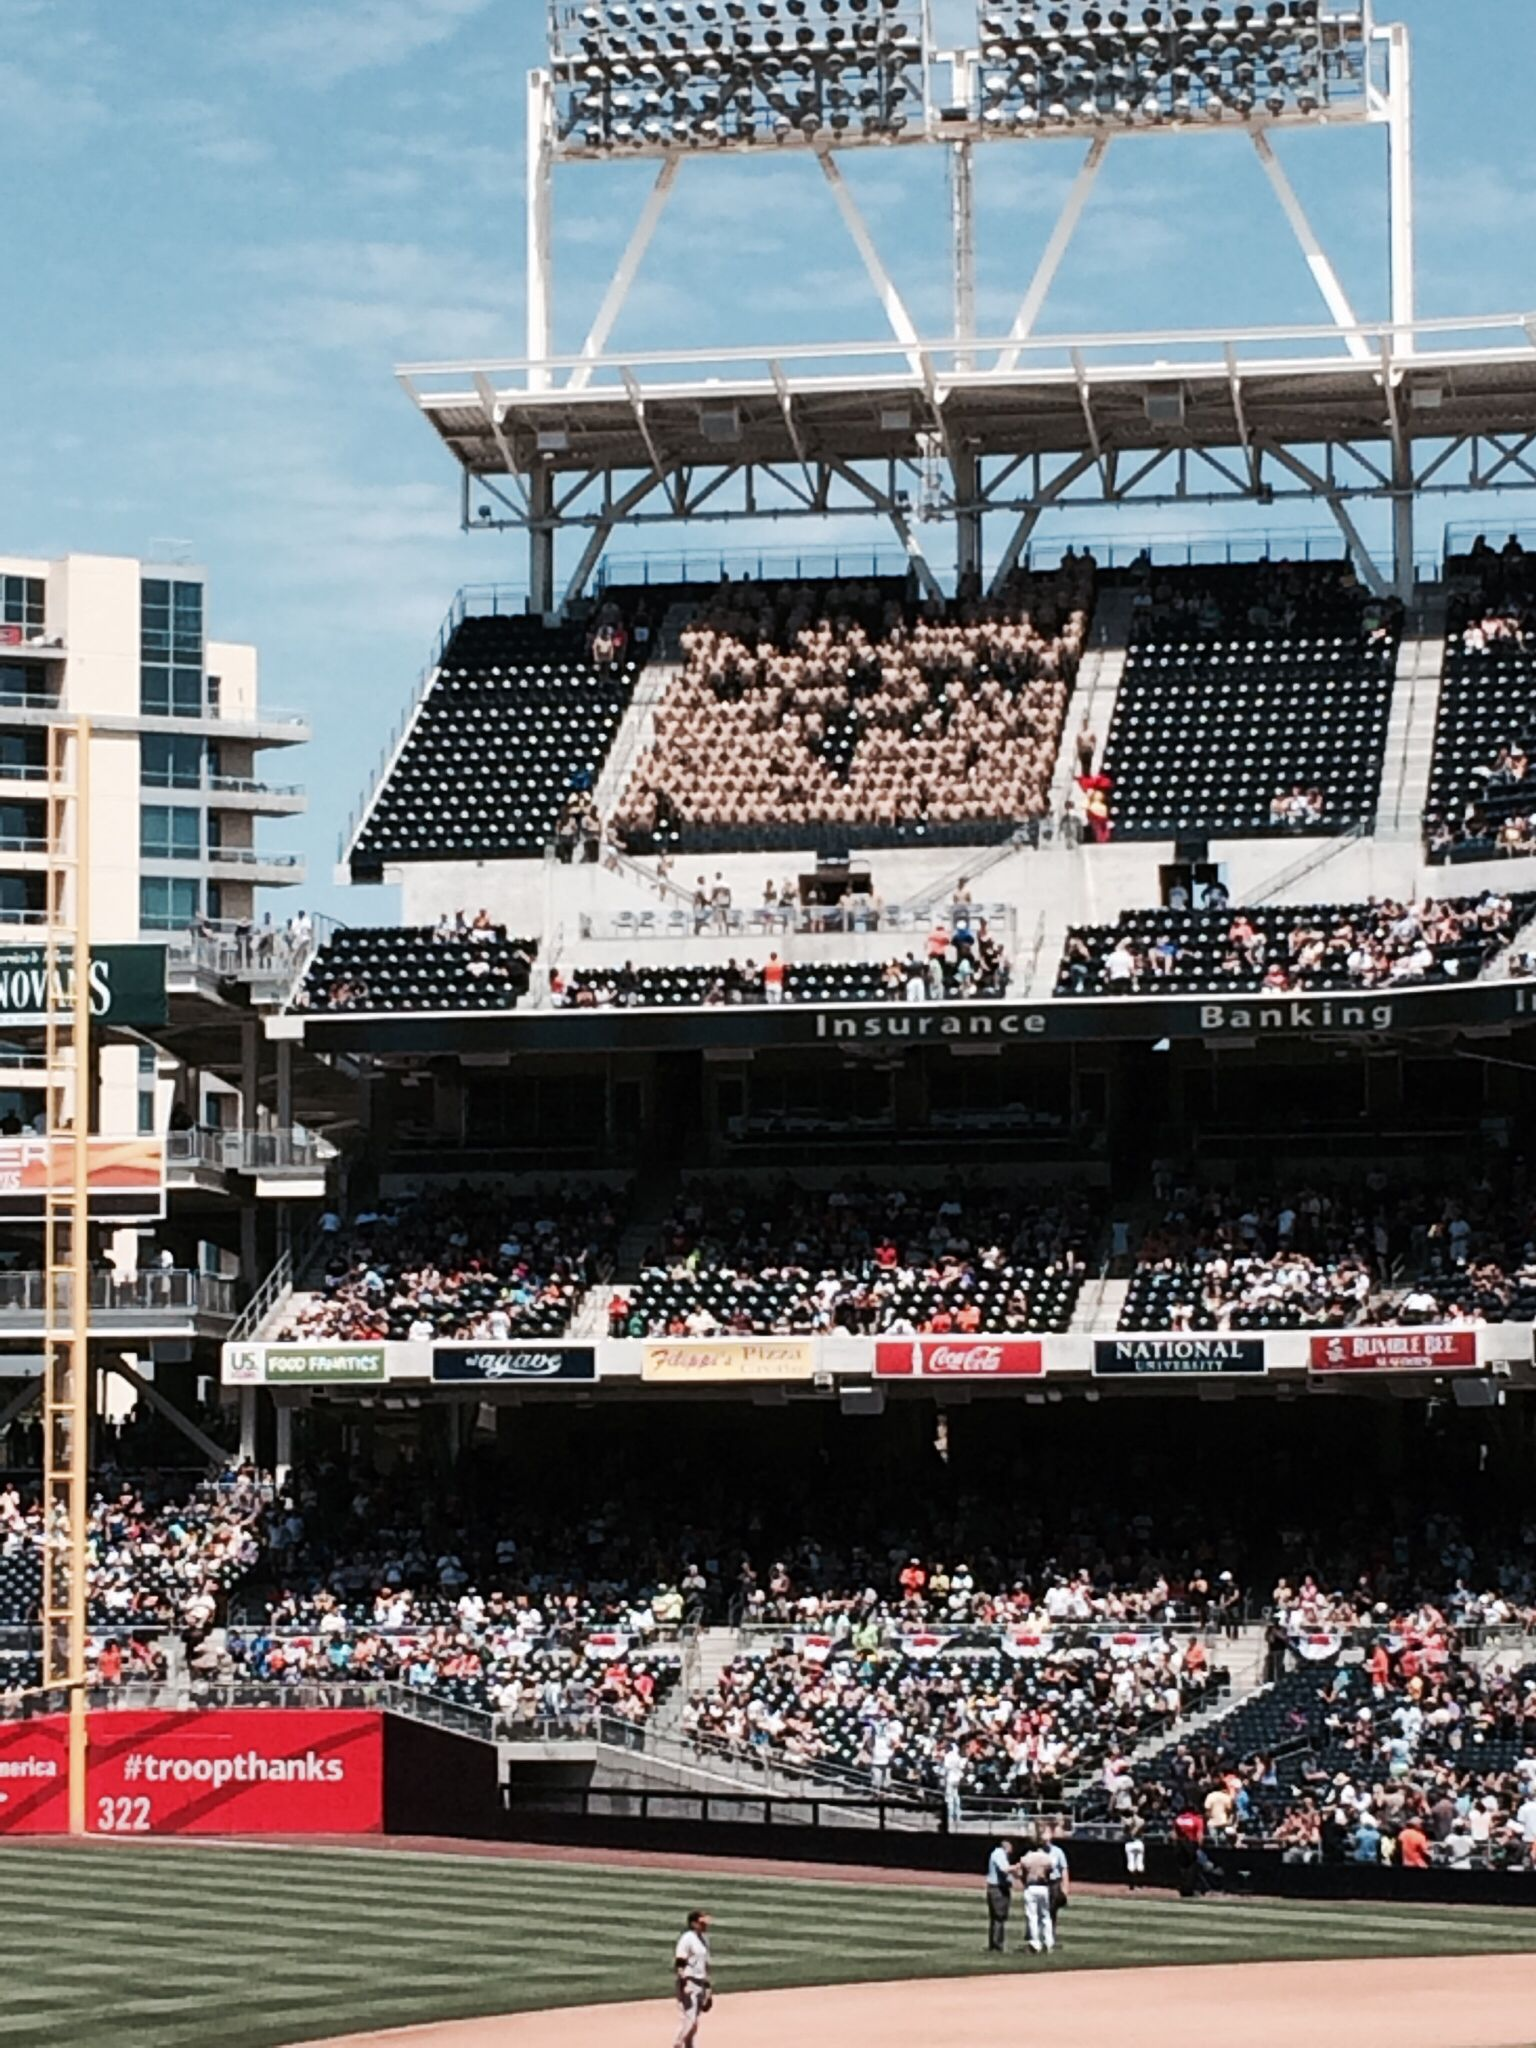 Marine Recruits Attend The San Diego Padres Game Each Sunday